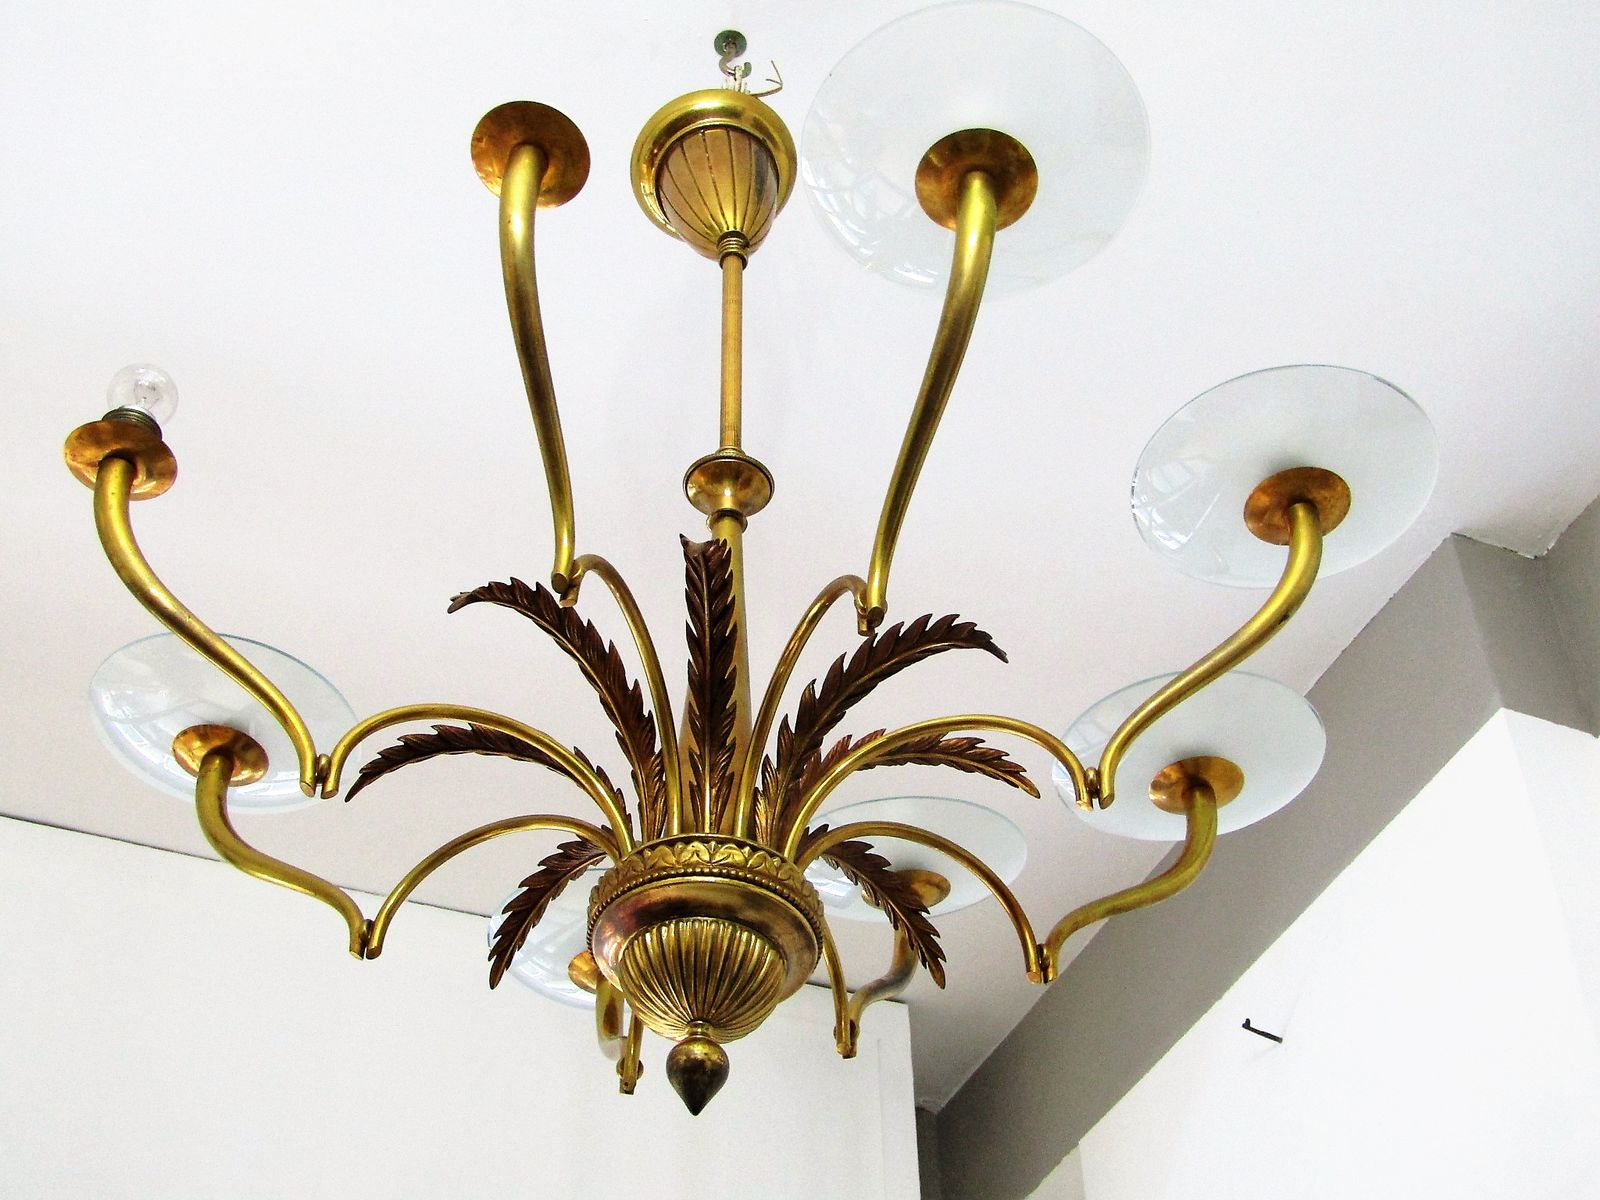 Italian glass disks chandelier 1930s for sale at pamono mozeypictures Gallery